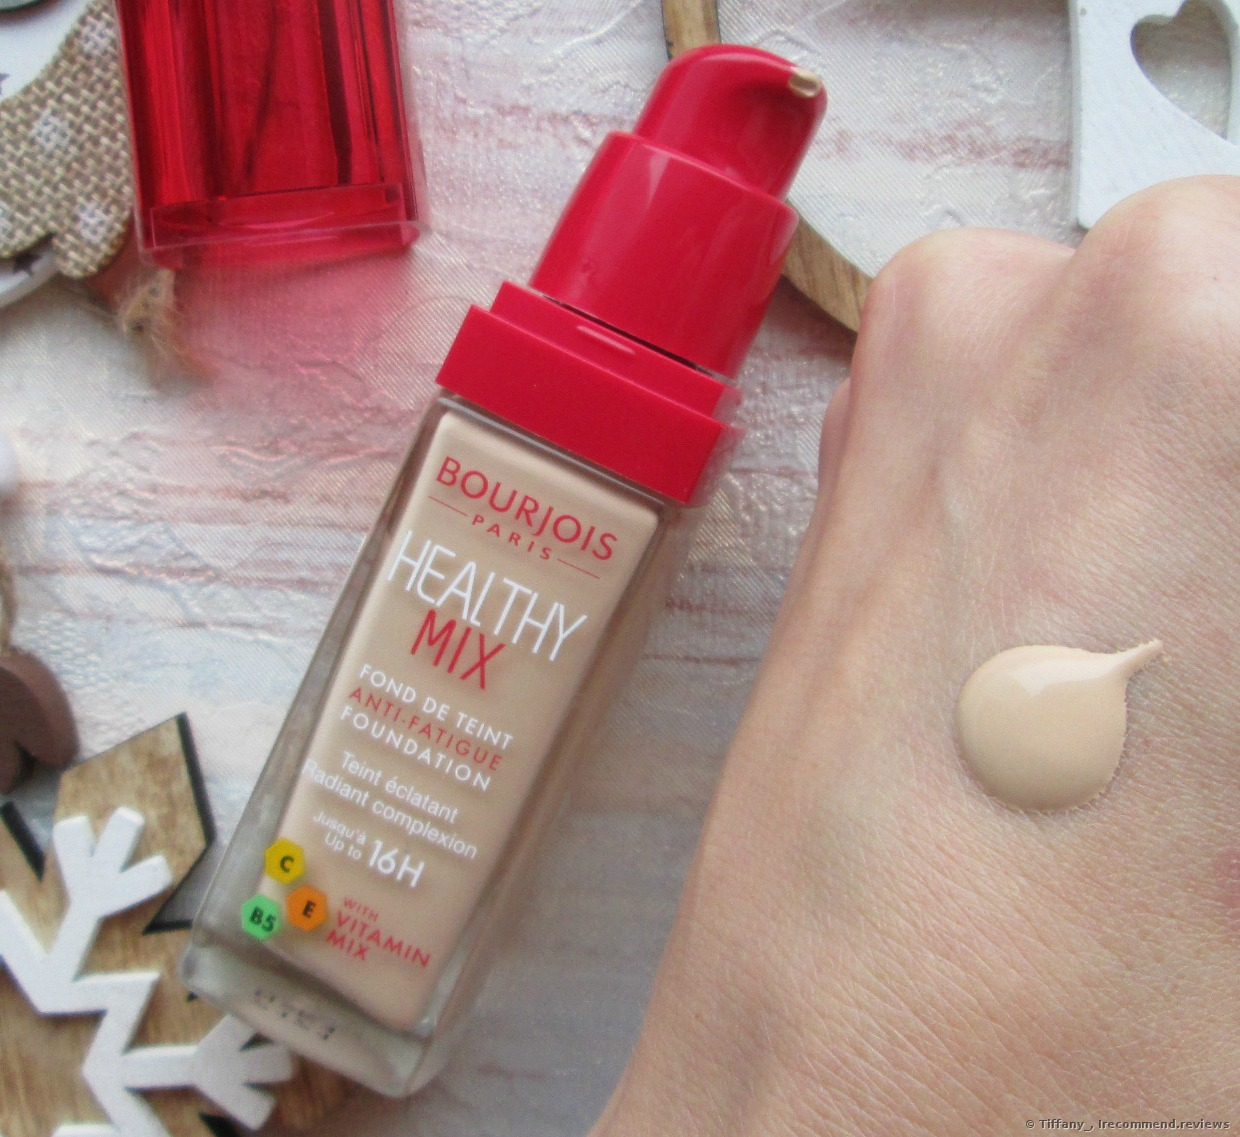 Bourjois Paris Healthy Mix Anti Fatigue And Radiance Reveal Foundation This Foundation Feels Like My Second Skin And Has Fruit Extracts And Vitamins In The Ingredients It Moisturizes My Skin Conceals Blemishes